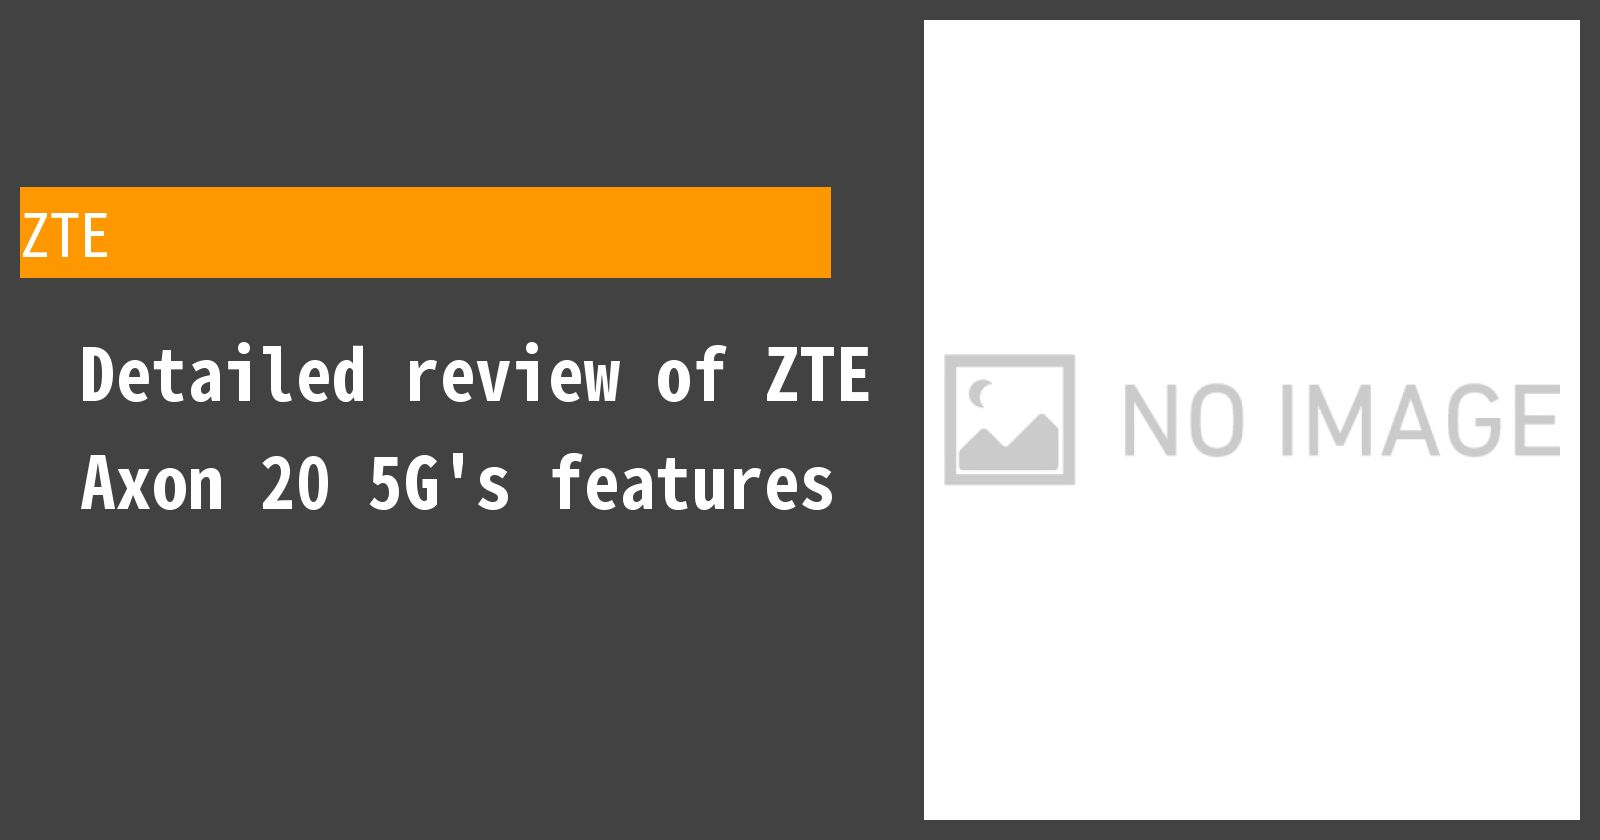 Detailed review of ZTE Axon 20 5G's features